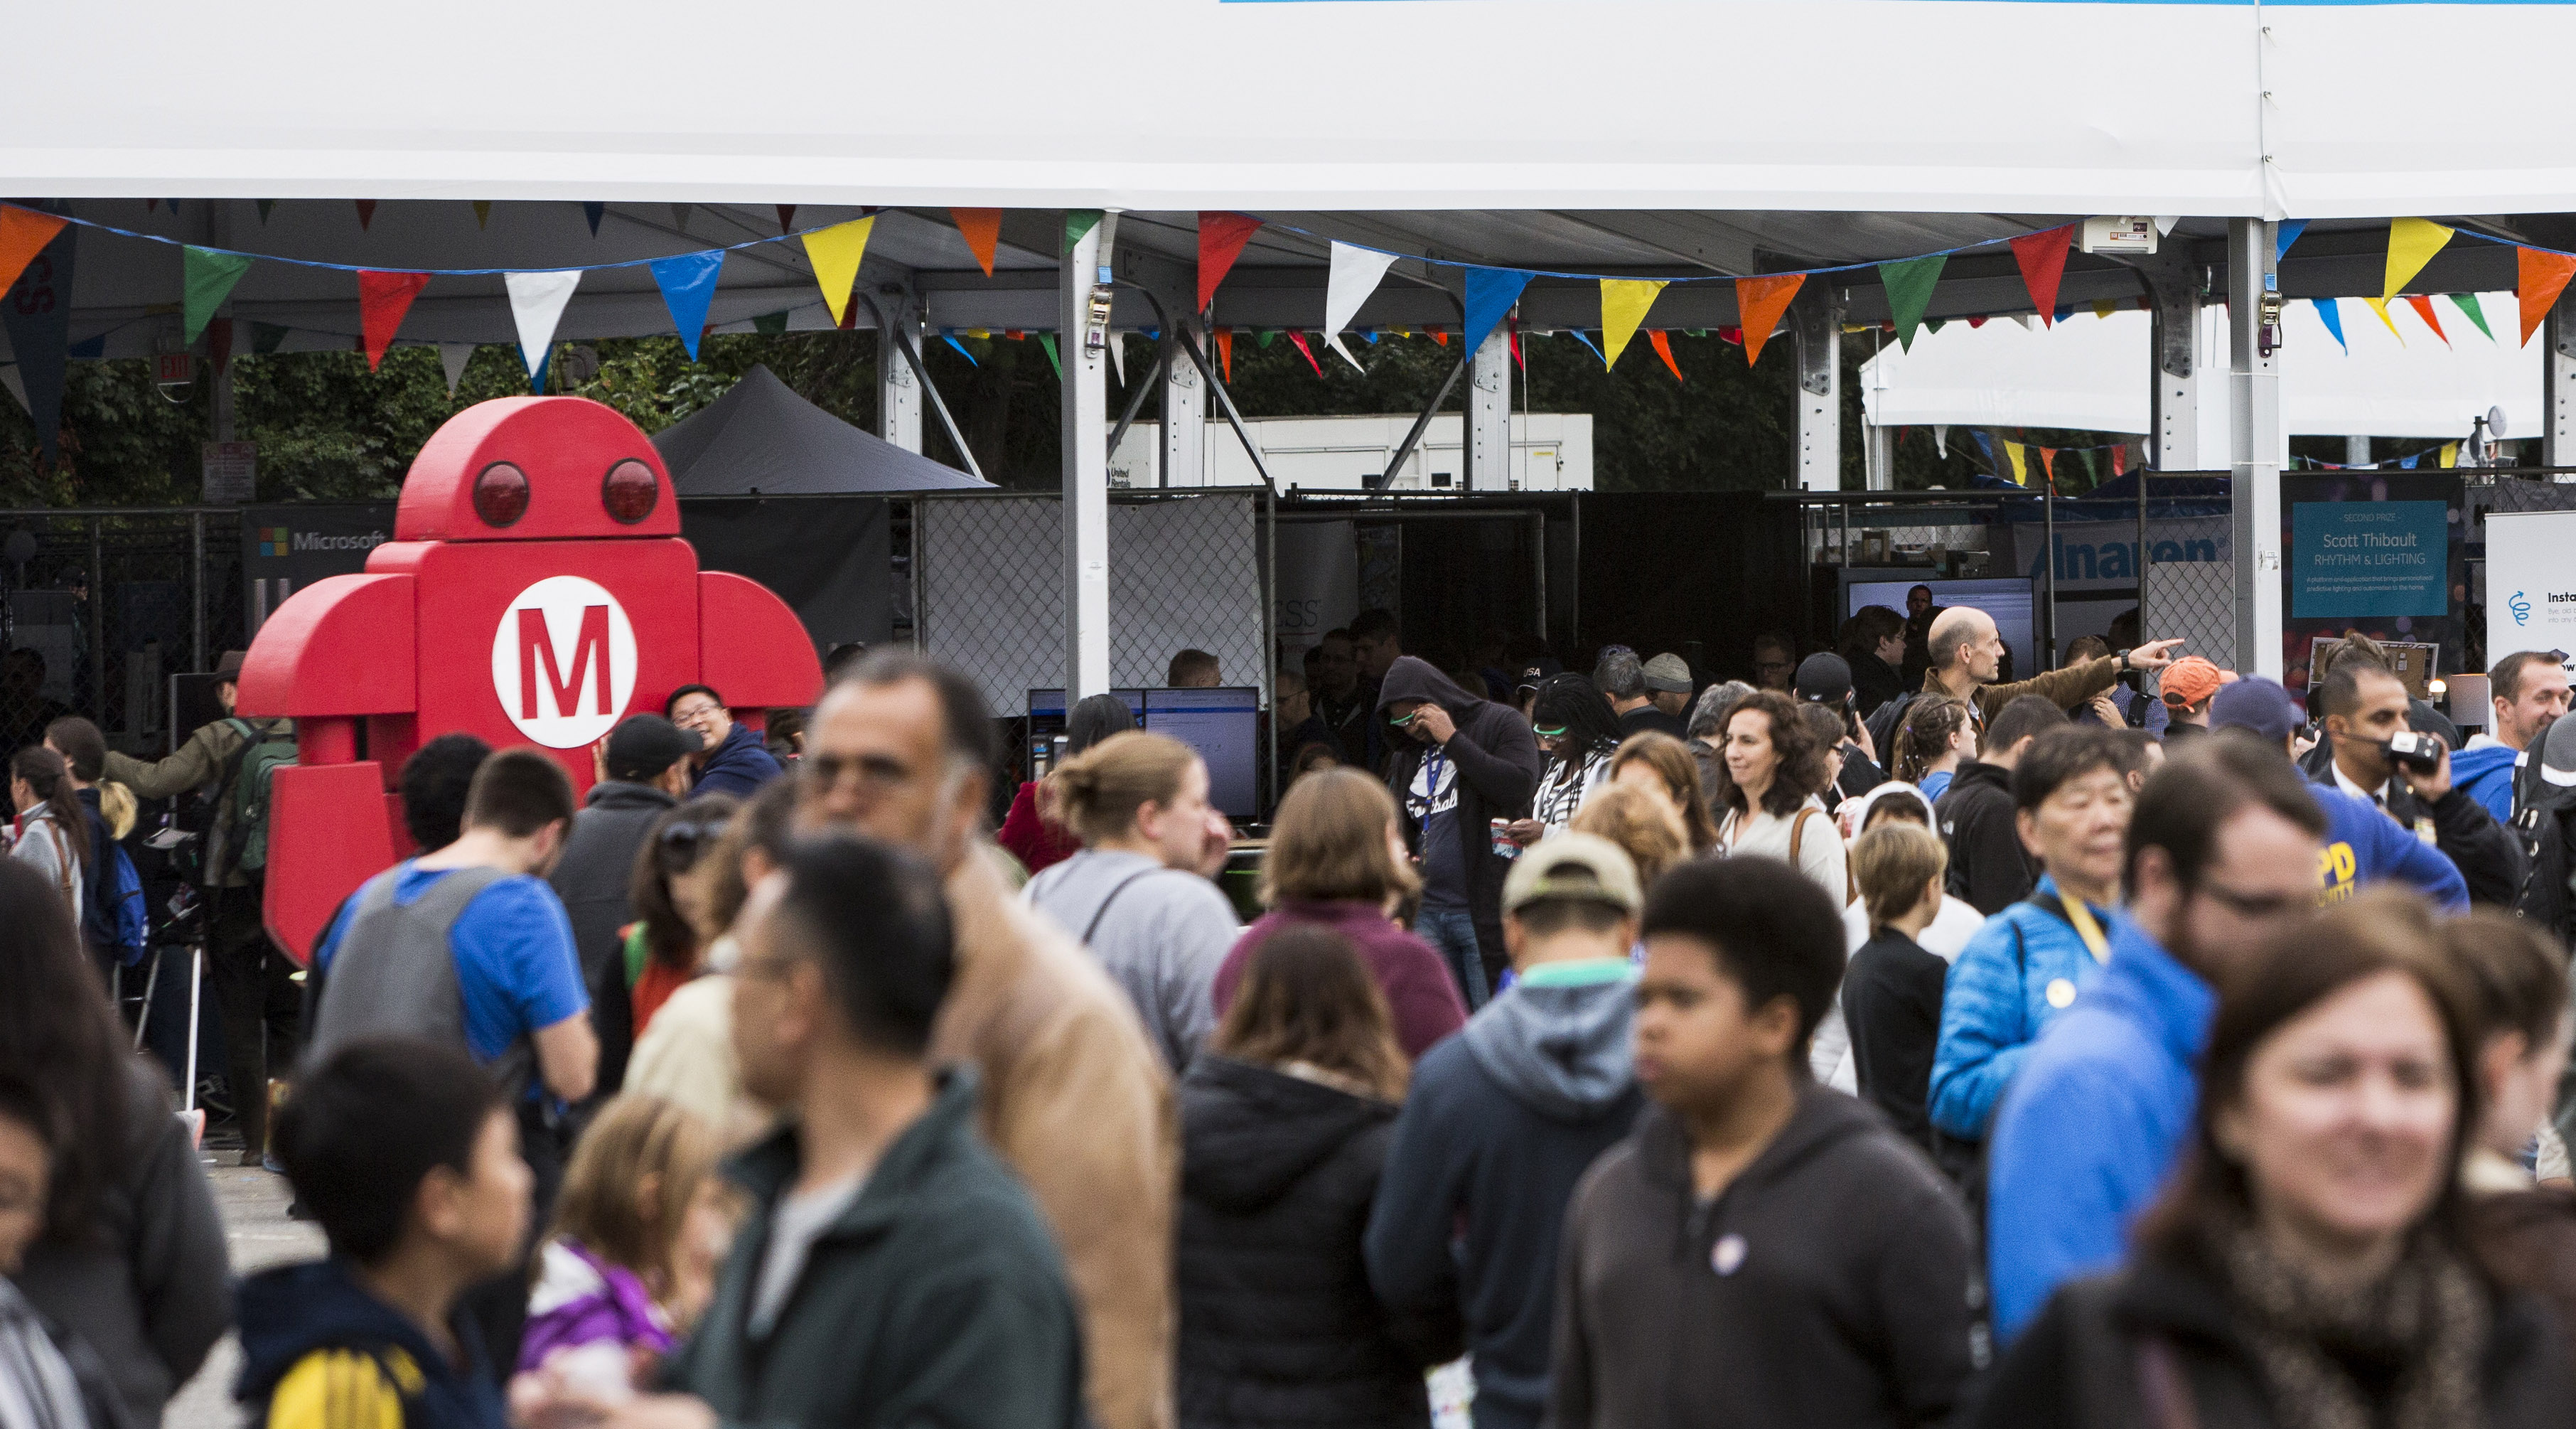 Get Early Bird Tickets for World Maker Faire New York Before They're Gone